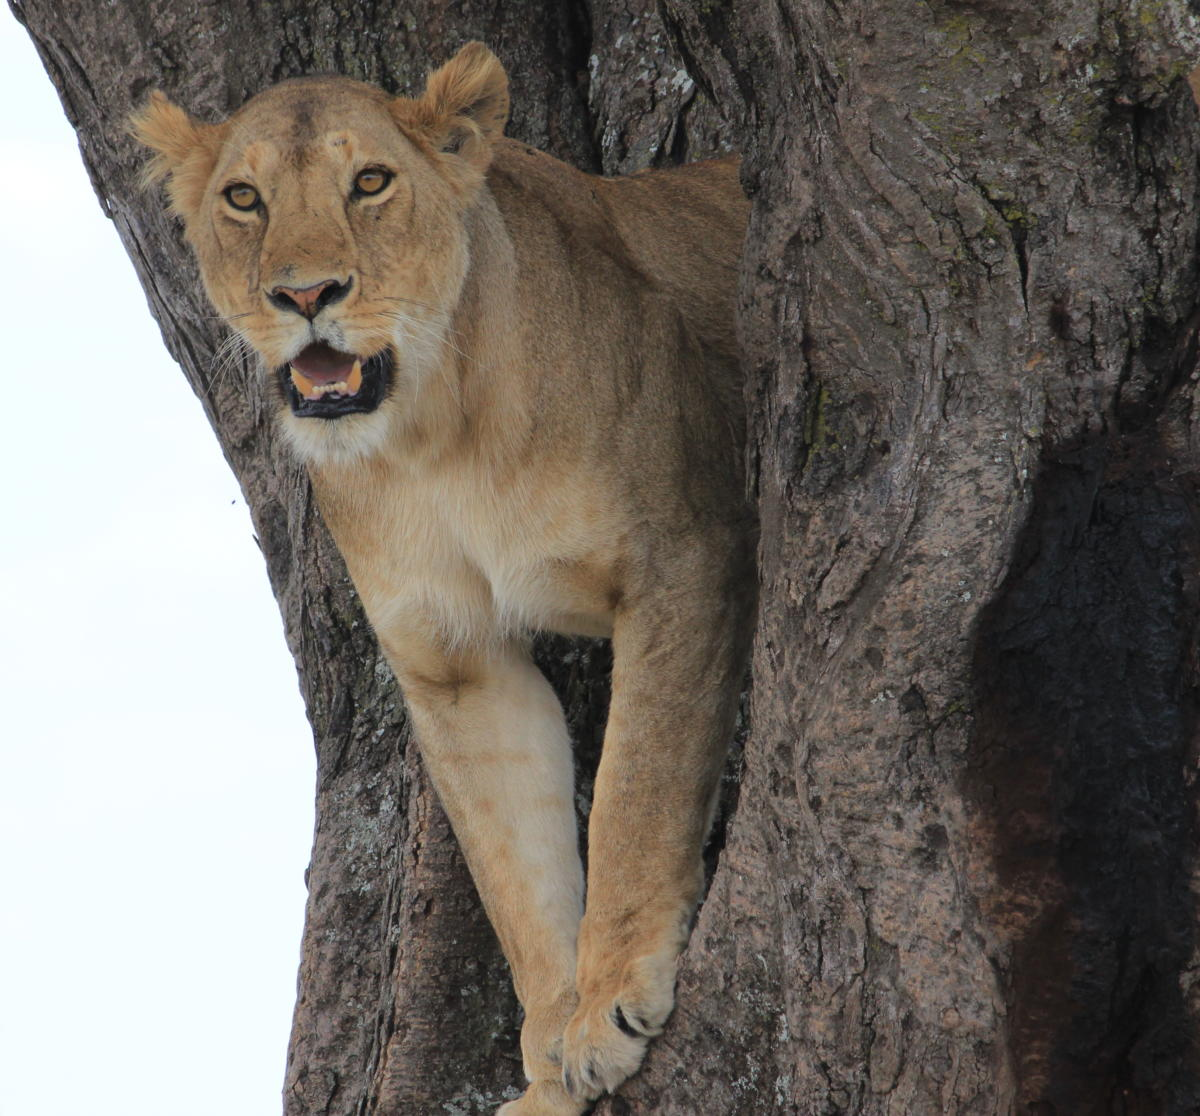 Lake-Manyara-National-Park-Tree-Climbing-Lion-